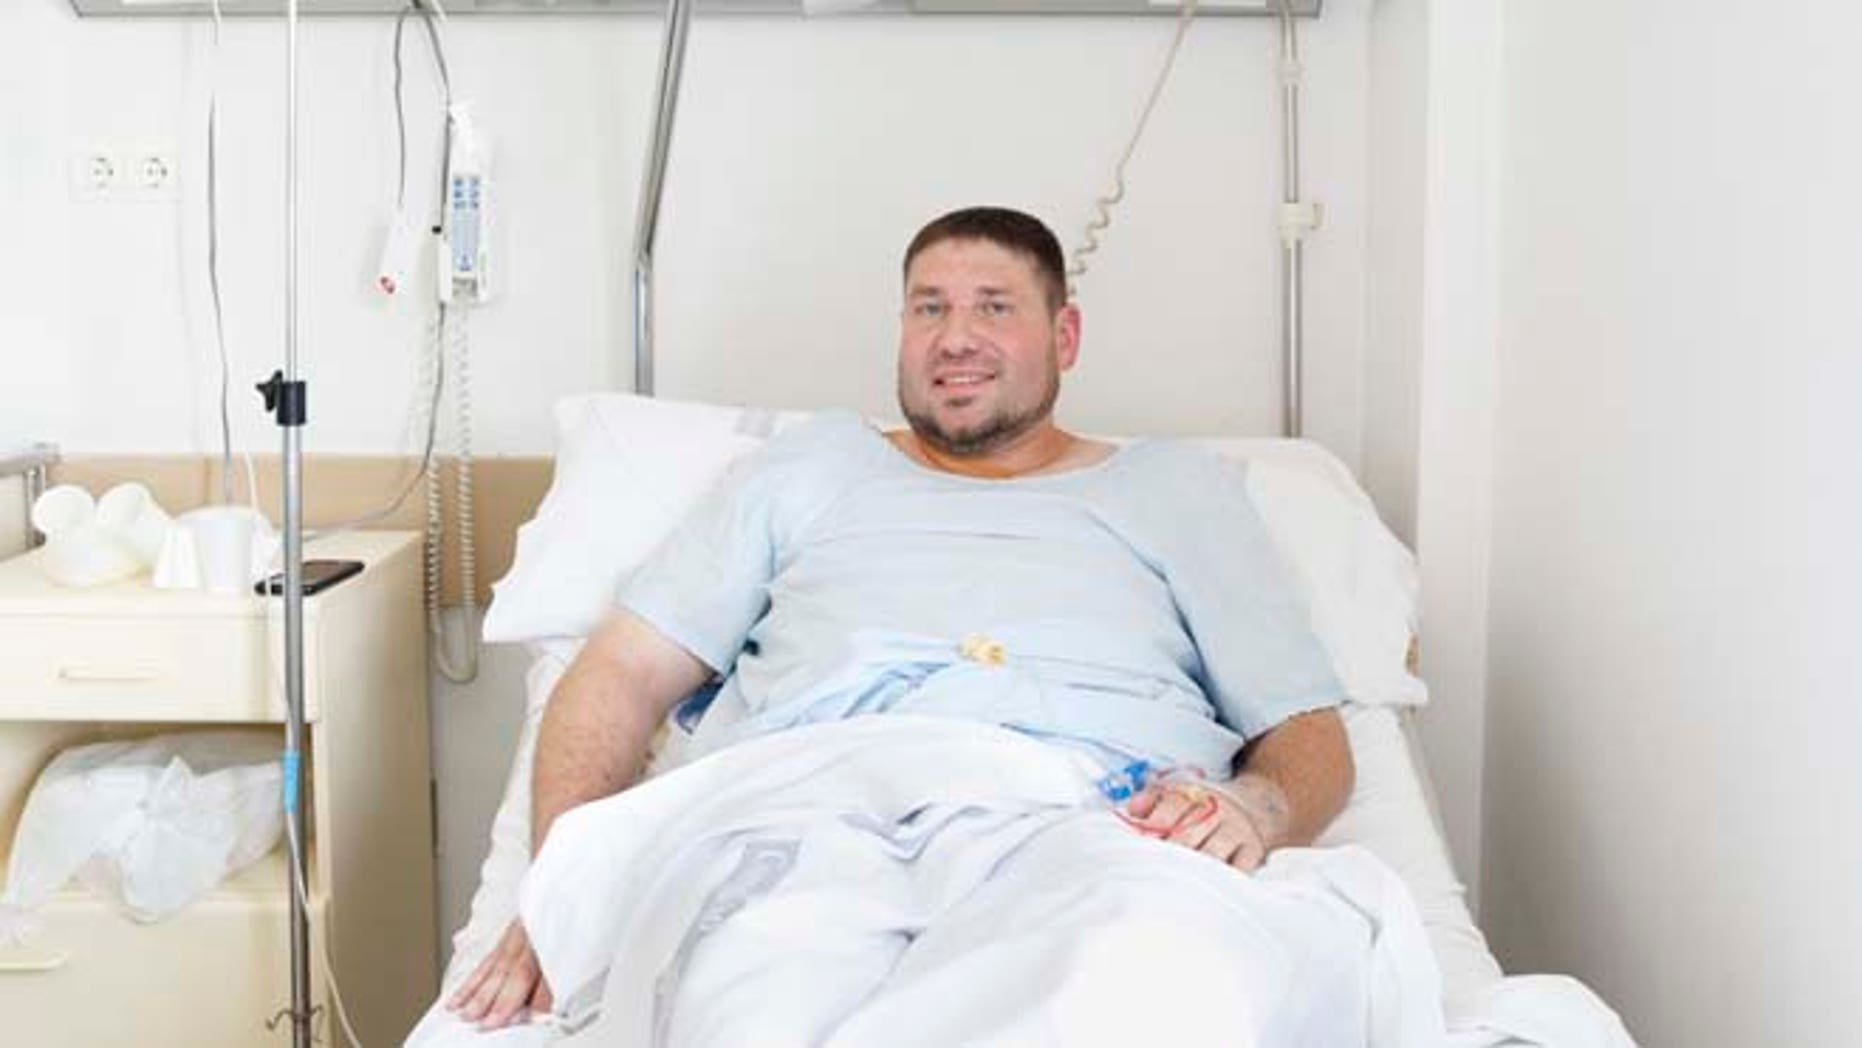 Mike Webster, a 38-year-old occupational therapist from Gainesville, Florida, who was gored in the armpit while running with the bulls in Pamplona for the 38th time over the last 11 years, poses for a picture on his hospital bed in Pamplona, Spain, Tuesday, July 7, 2015. Two Americans and a Briton were gored and eight others injured Tuesday as thousands of daredevils dashed alongside fighting bulls through the streets of this northern Spanish city on the first bull run of the San Fermin festival (AP Photo/Daniel Ochoa de Olza)